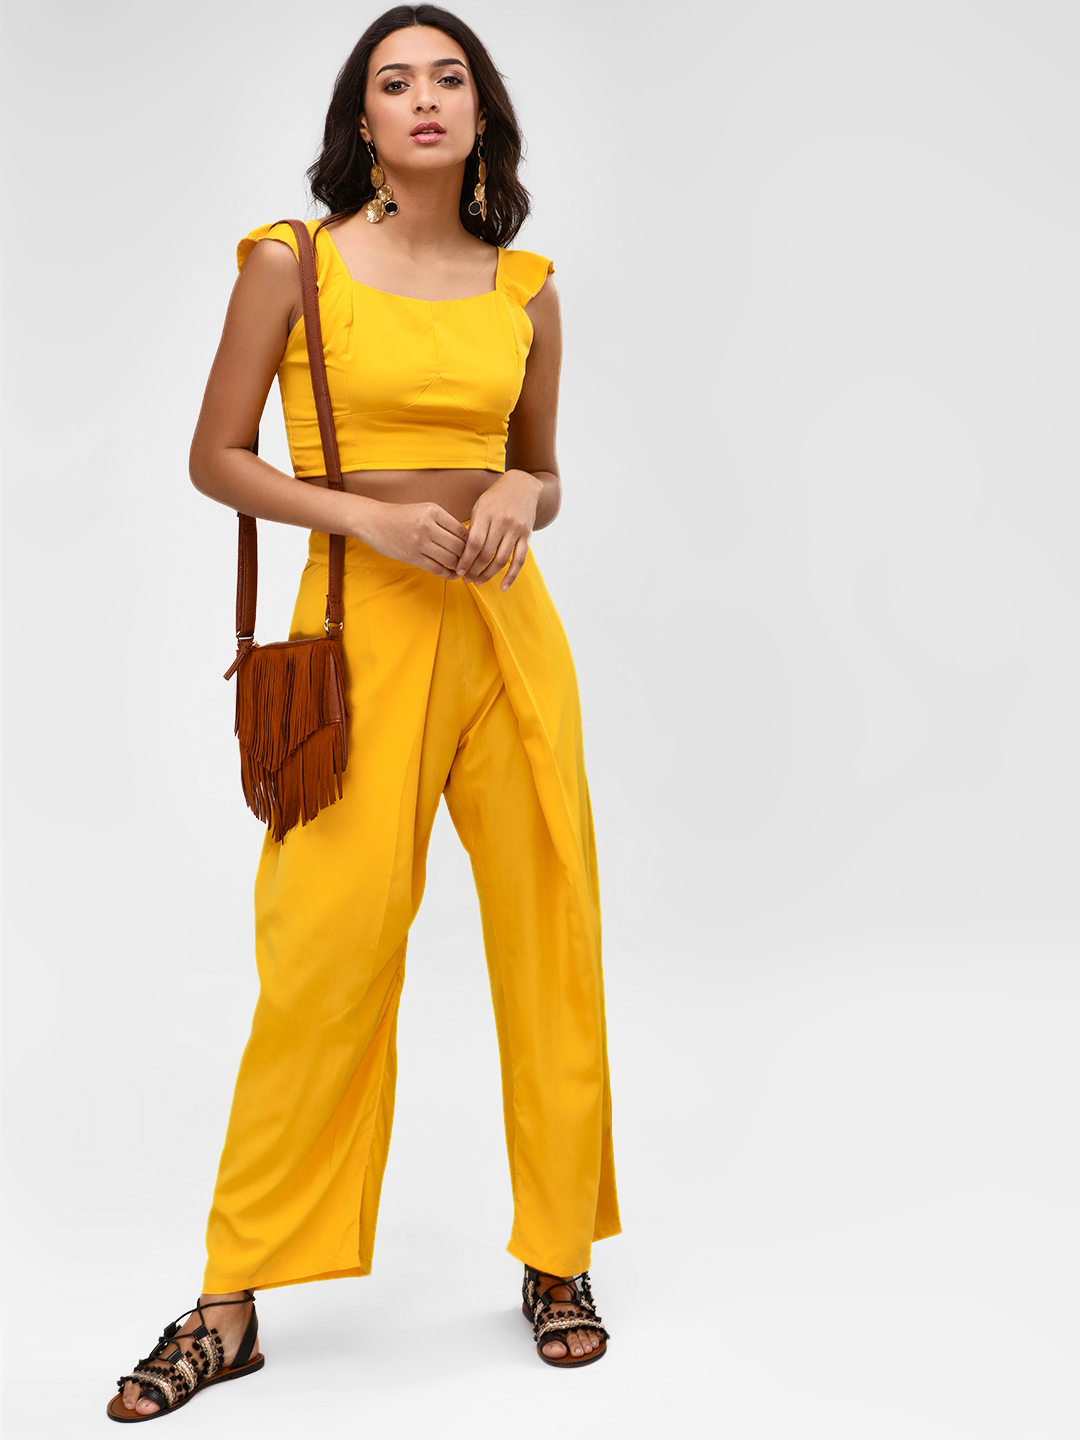 Rena Love Yellow Pleated Front Palazzo Pants 1